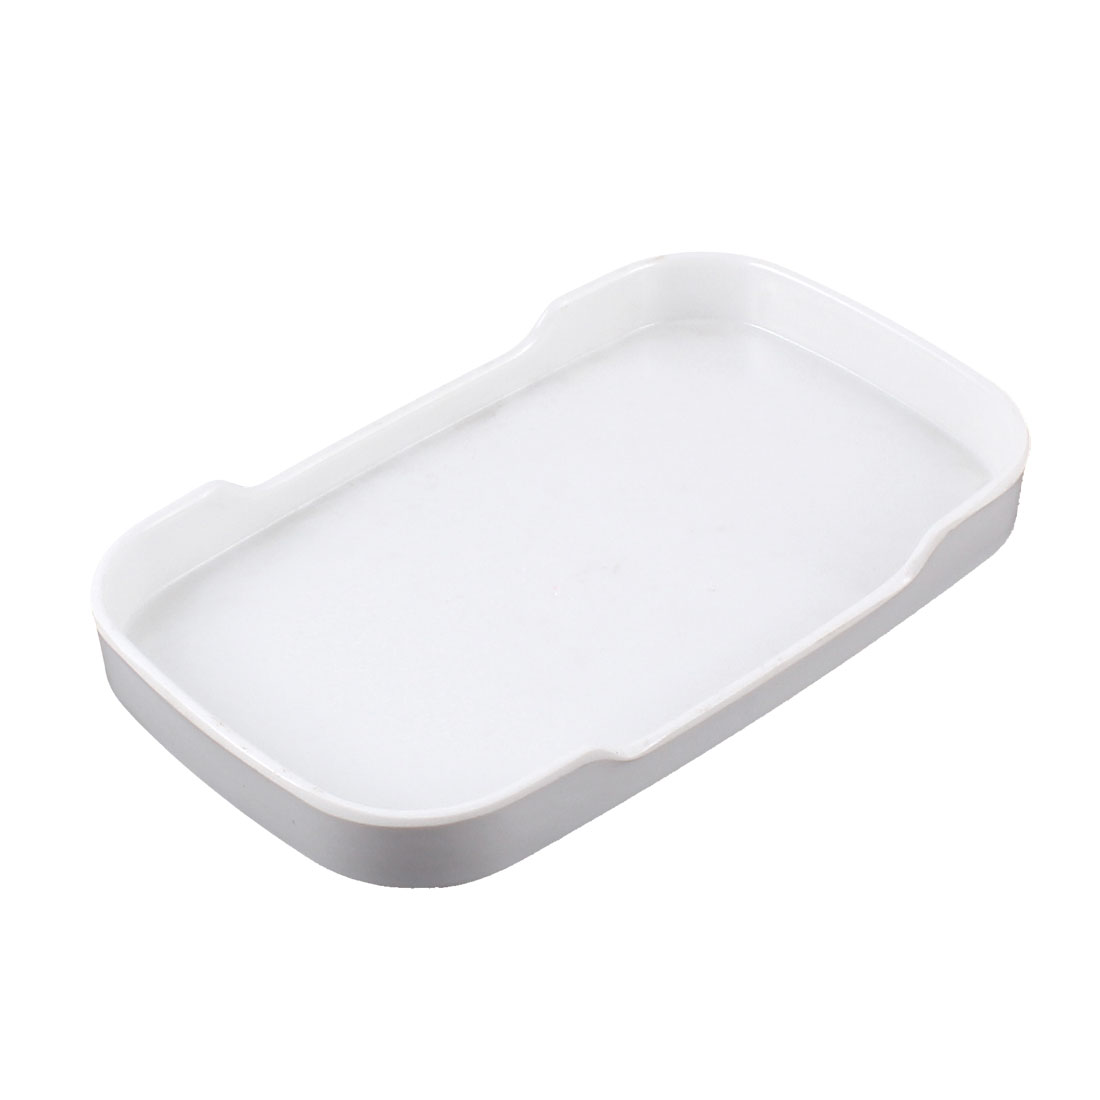 Plastic Rectangle Shaped Smooth Surface Dinner Dessert Snack Plate White